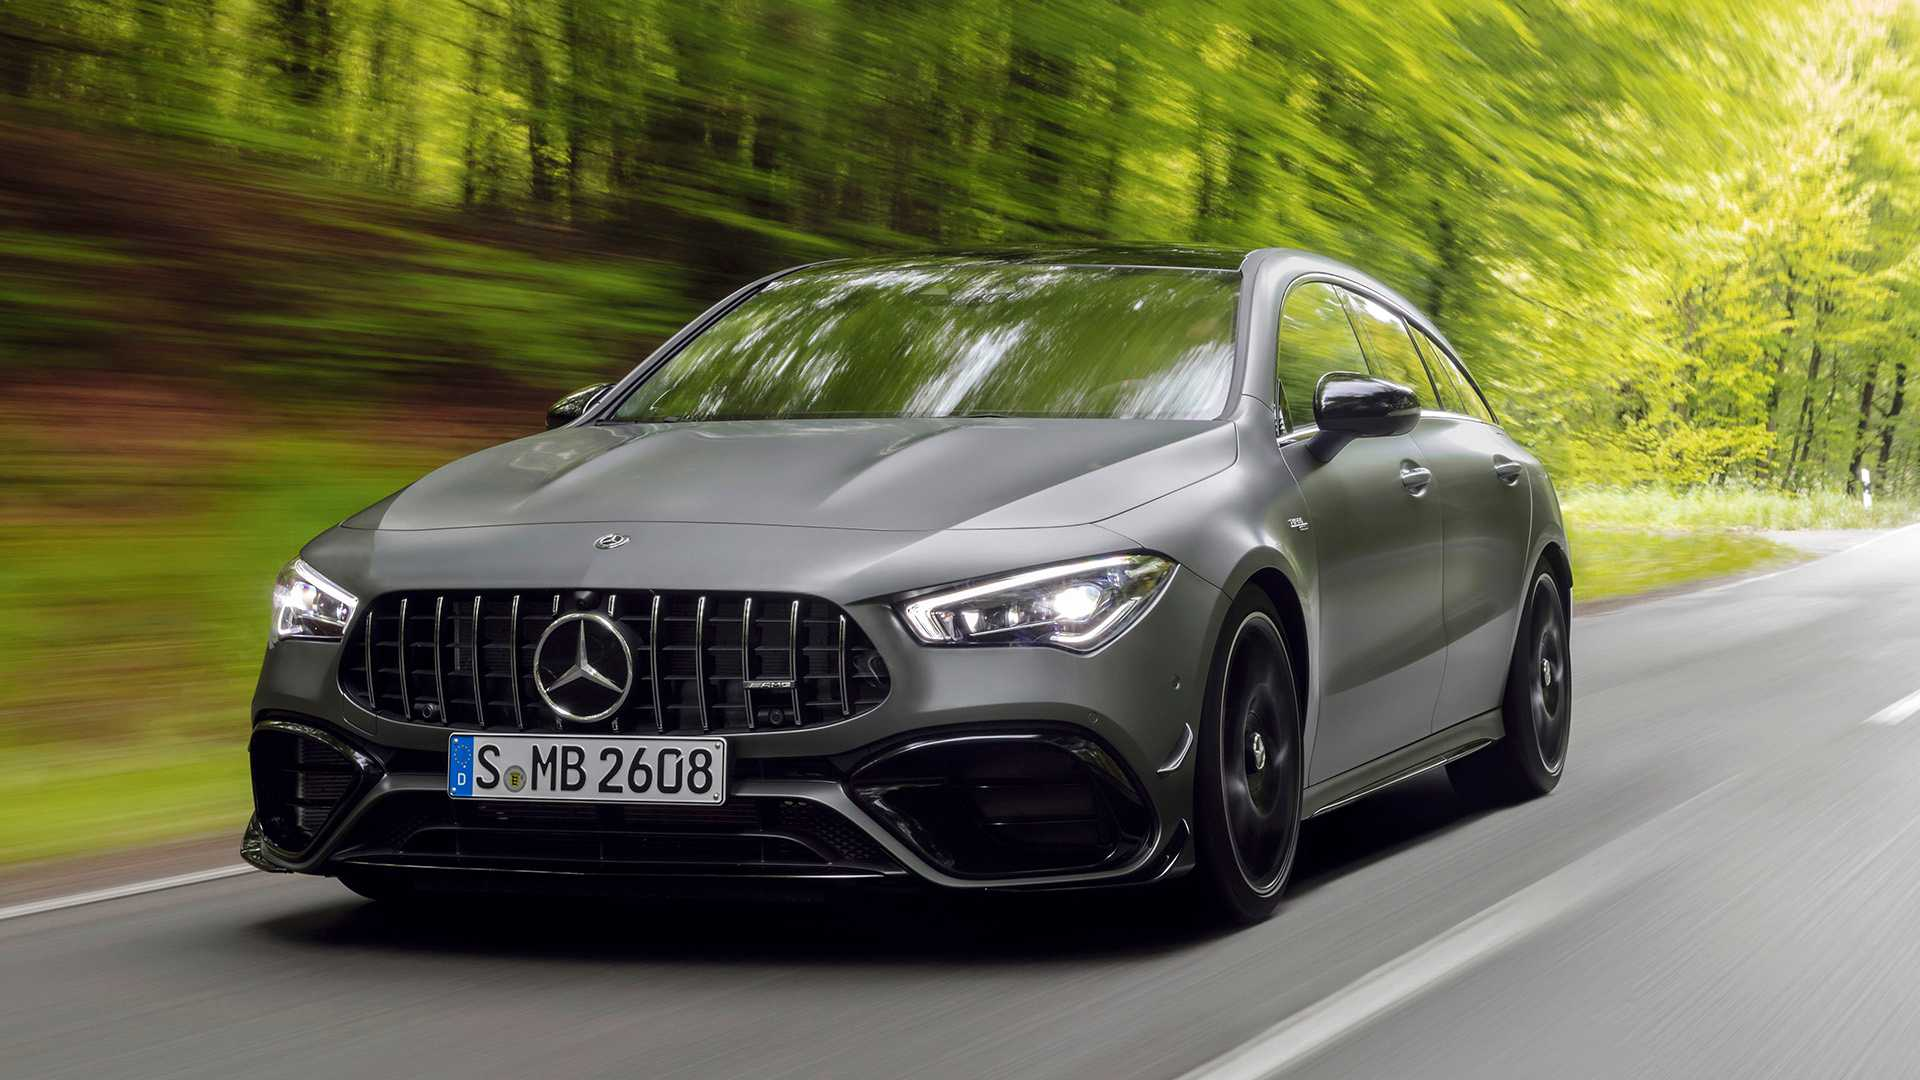 2020 Mercedes-AMG CLA 45 S 4MATIC+ Shooting Brake Front Wallpapers (5)